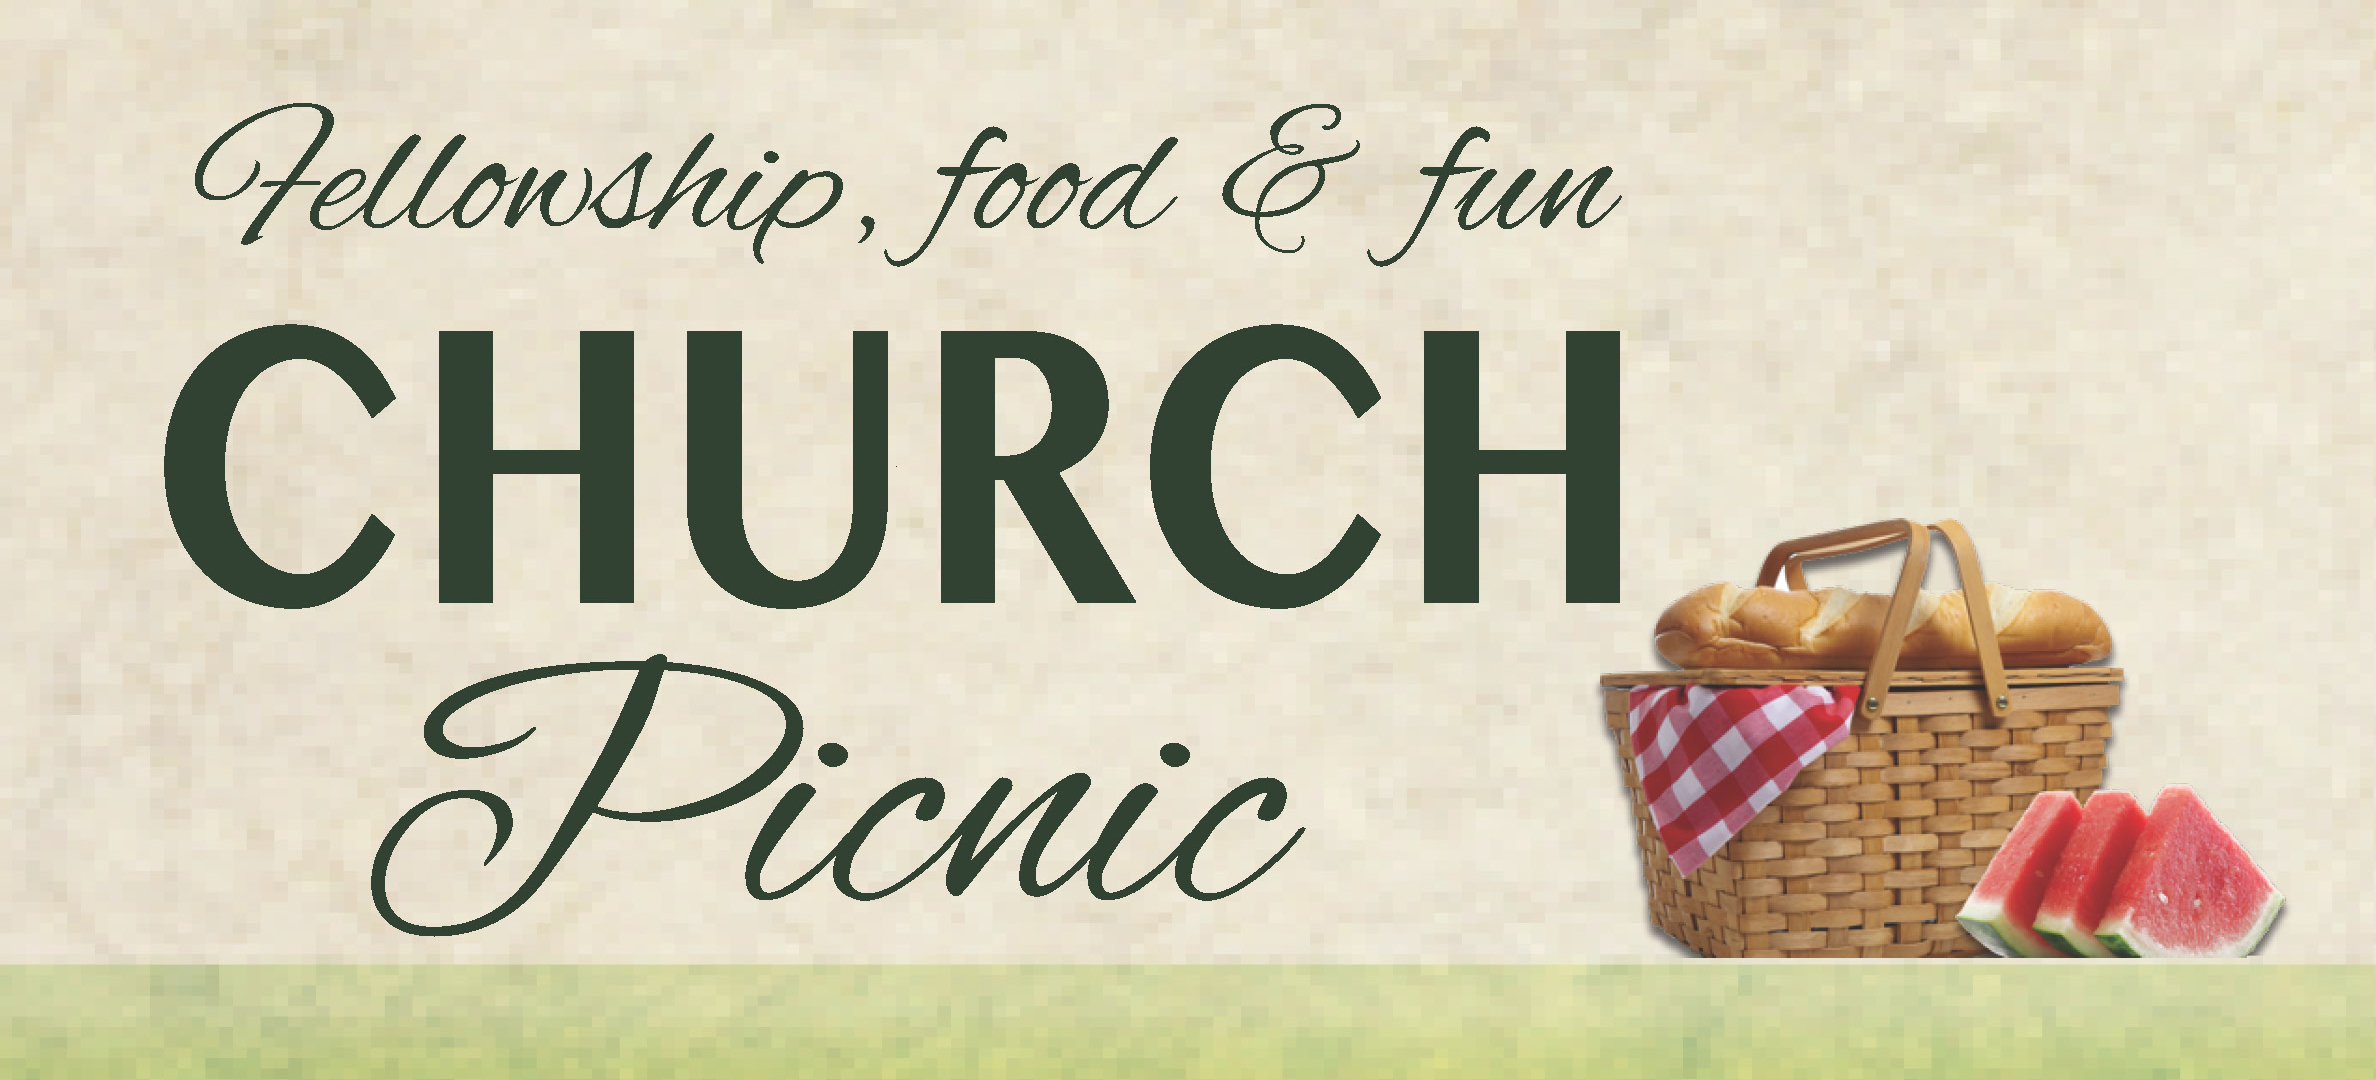 Picnic-banner-cropped